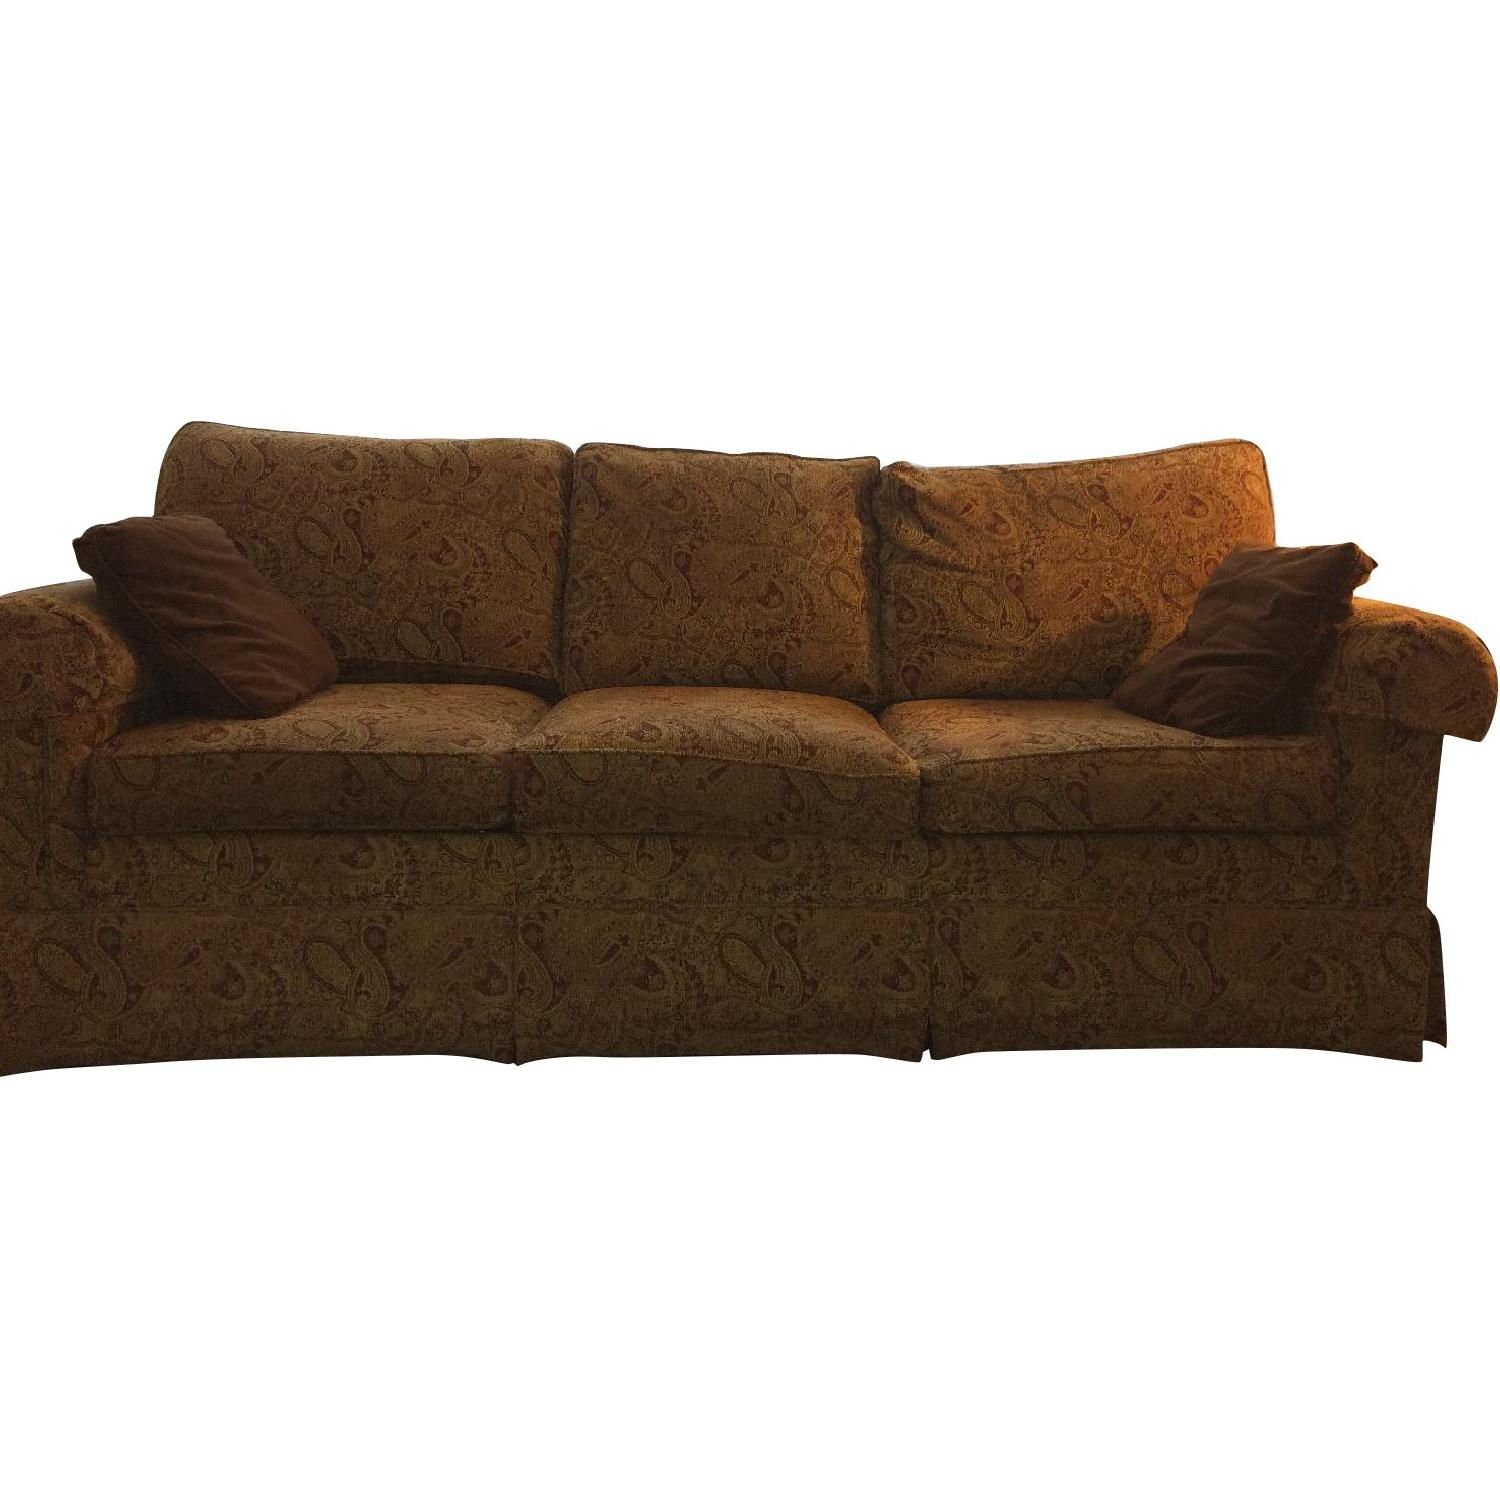 Ethan Allen Slipcovered Rolled Arm Sofa